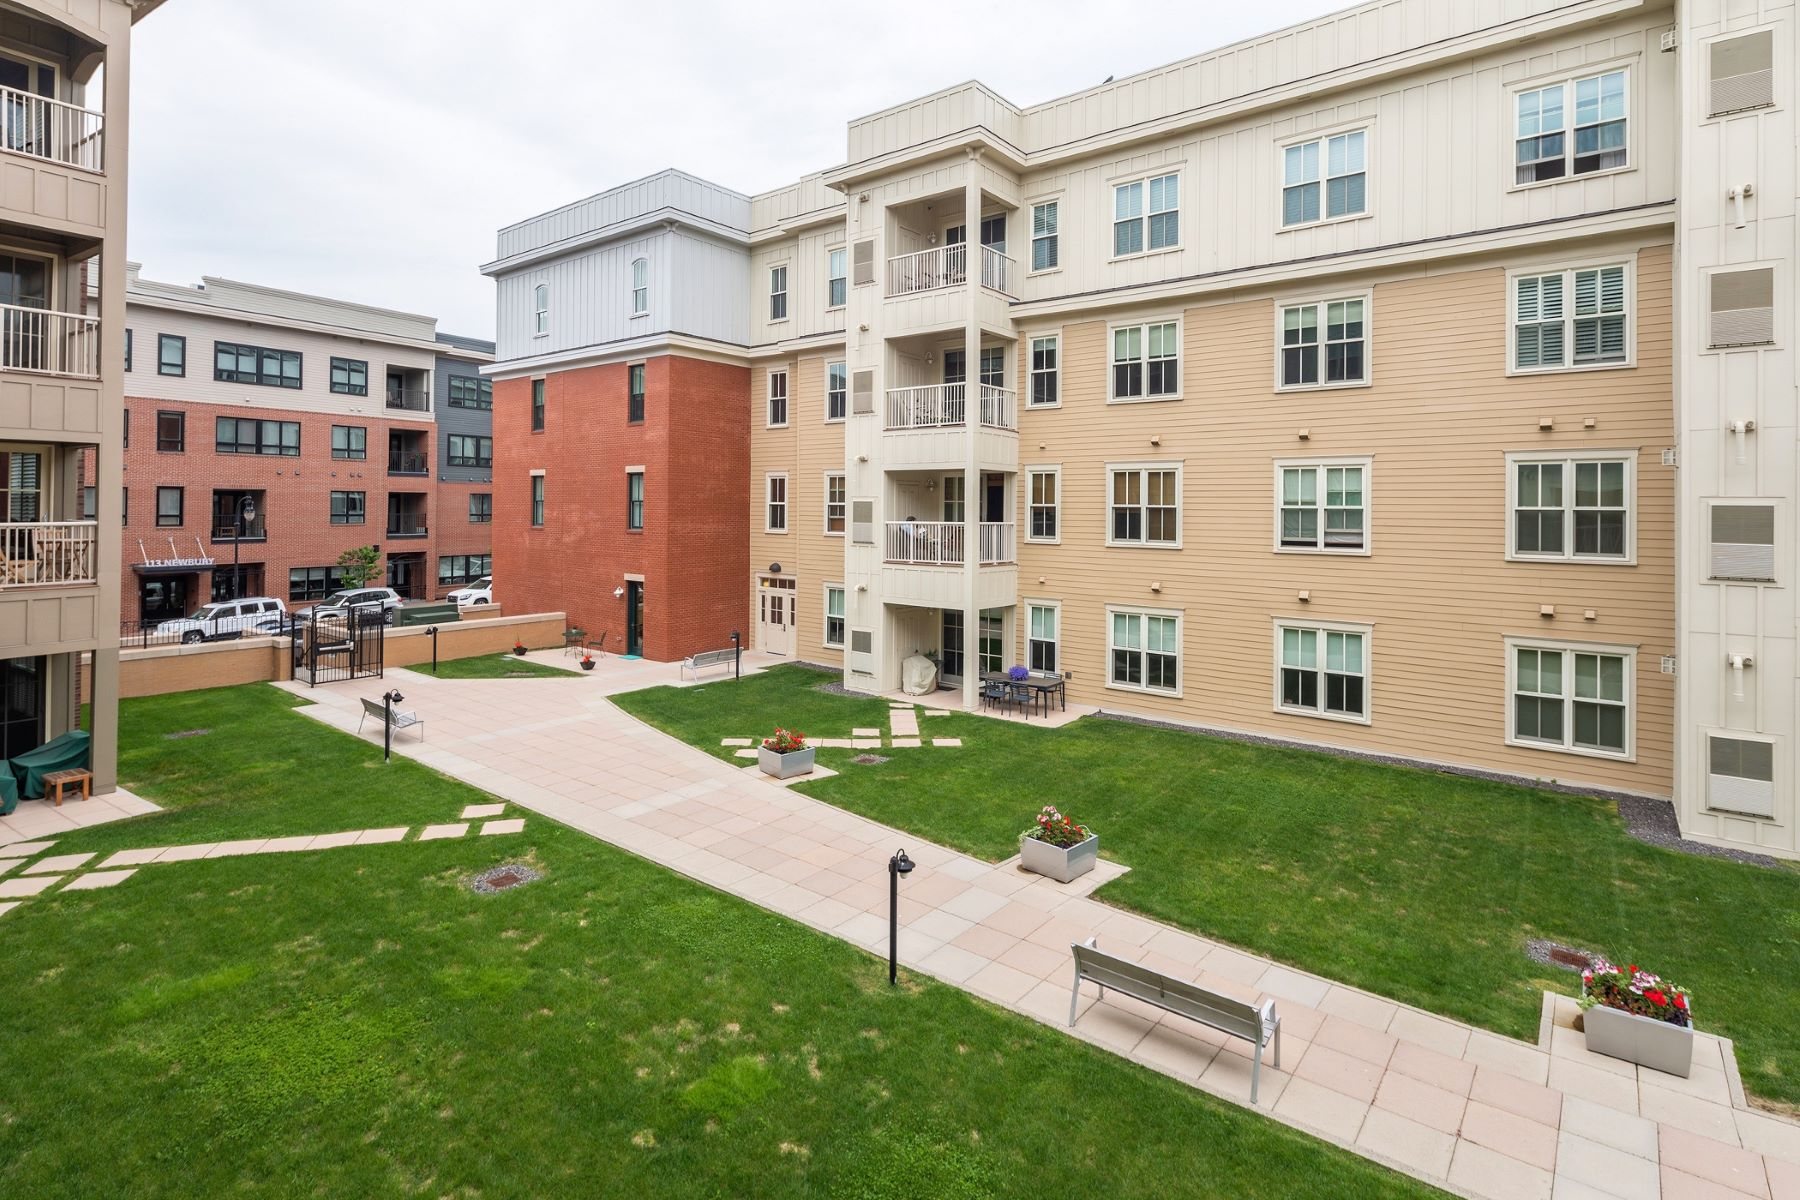 Condominium for Sale at 15 Middle Street, Unit 310 15 Middle Street, Unit 310 Portland, Maine 04101 United States